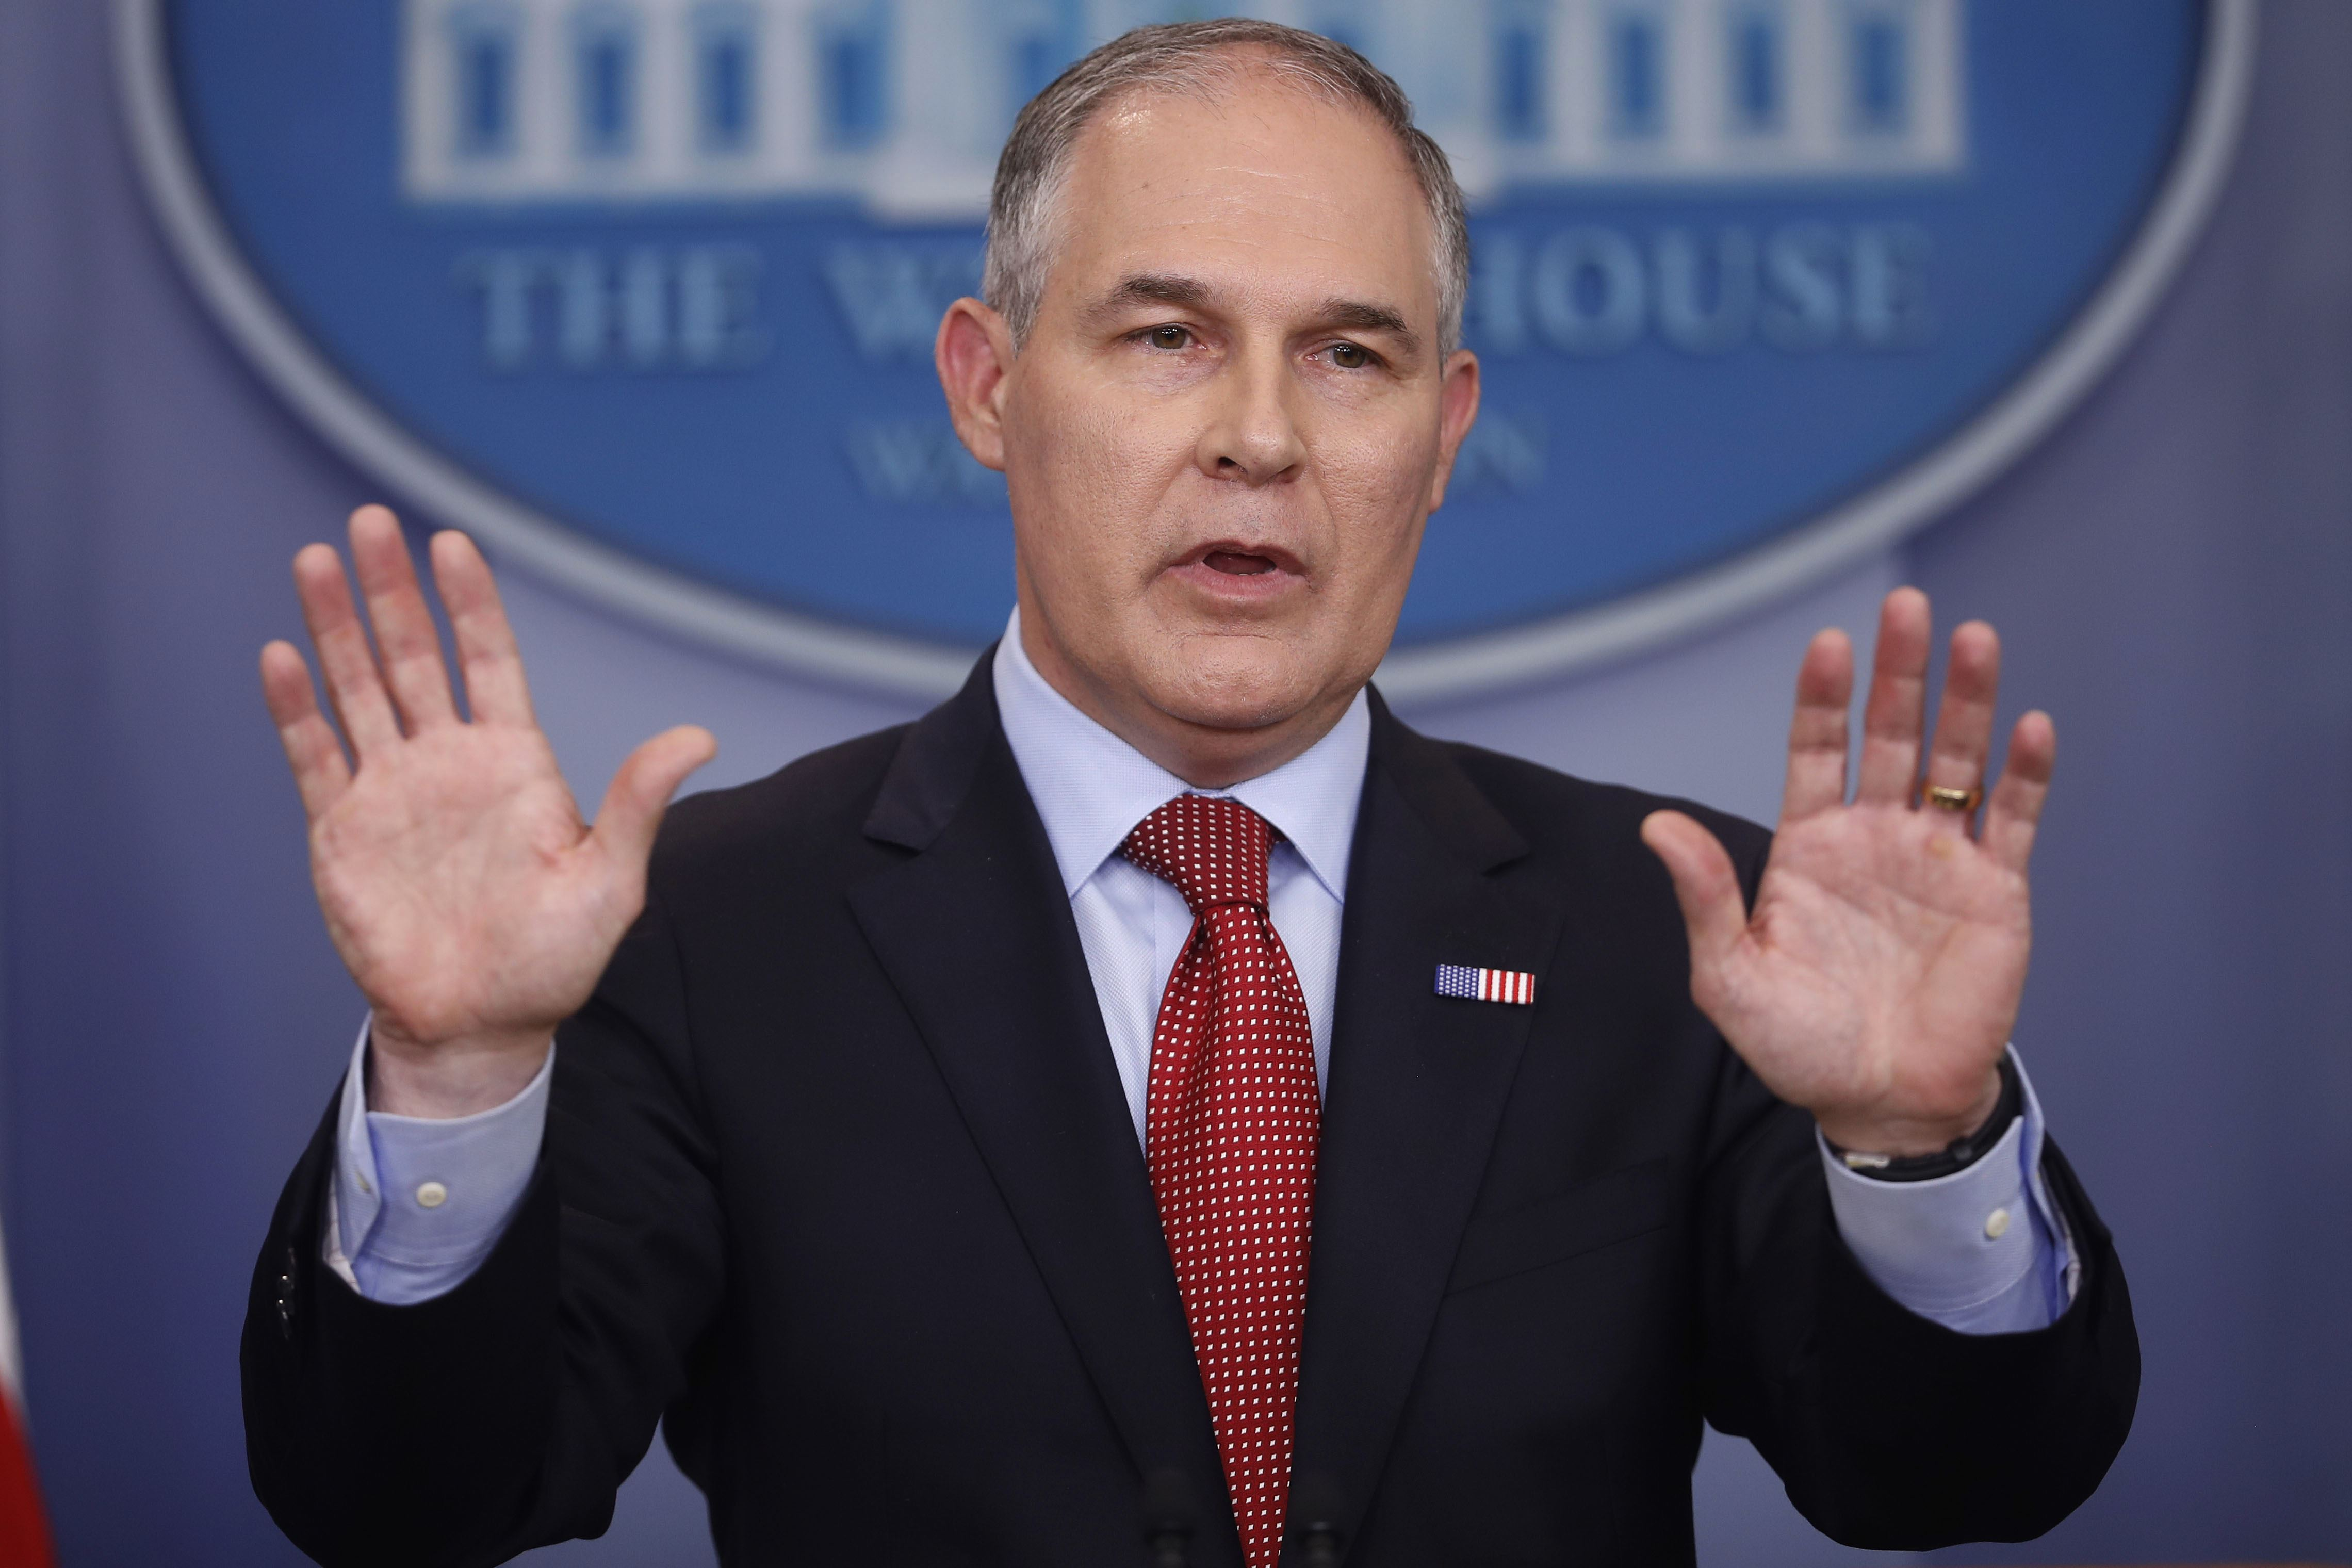 EPA Methane In this June 2 file photo, EPA Administrator Scott Pruitt speaks to the media during the daily briefing in the Brady Press Briefing Room of the White House in Washington, D.C.